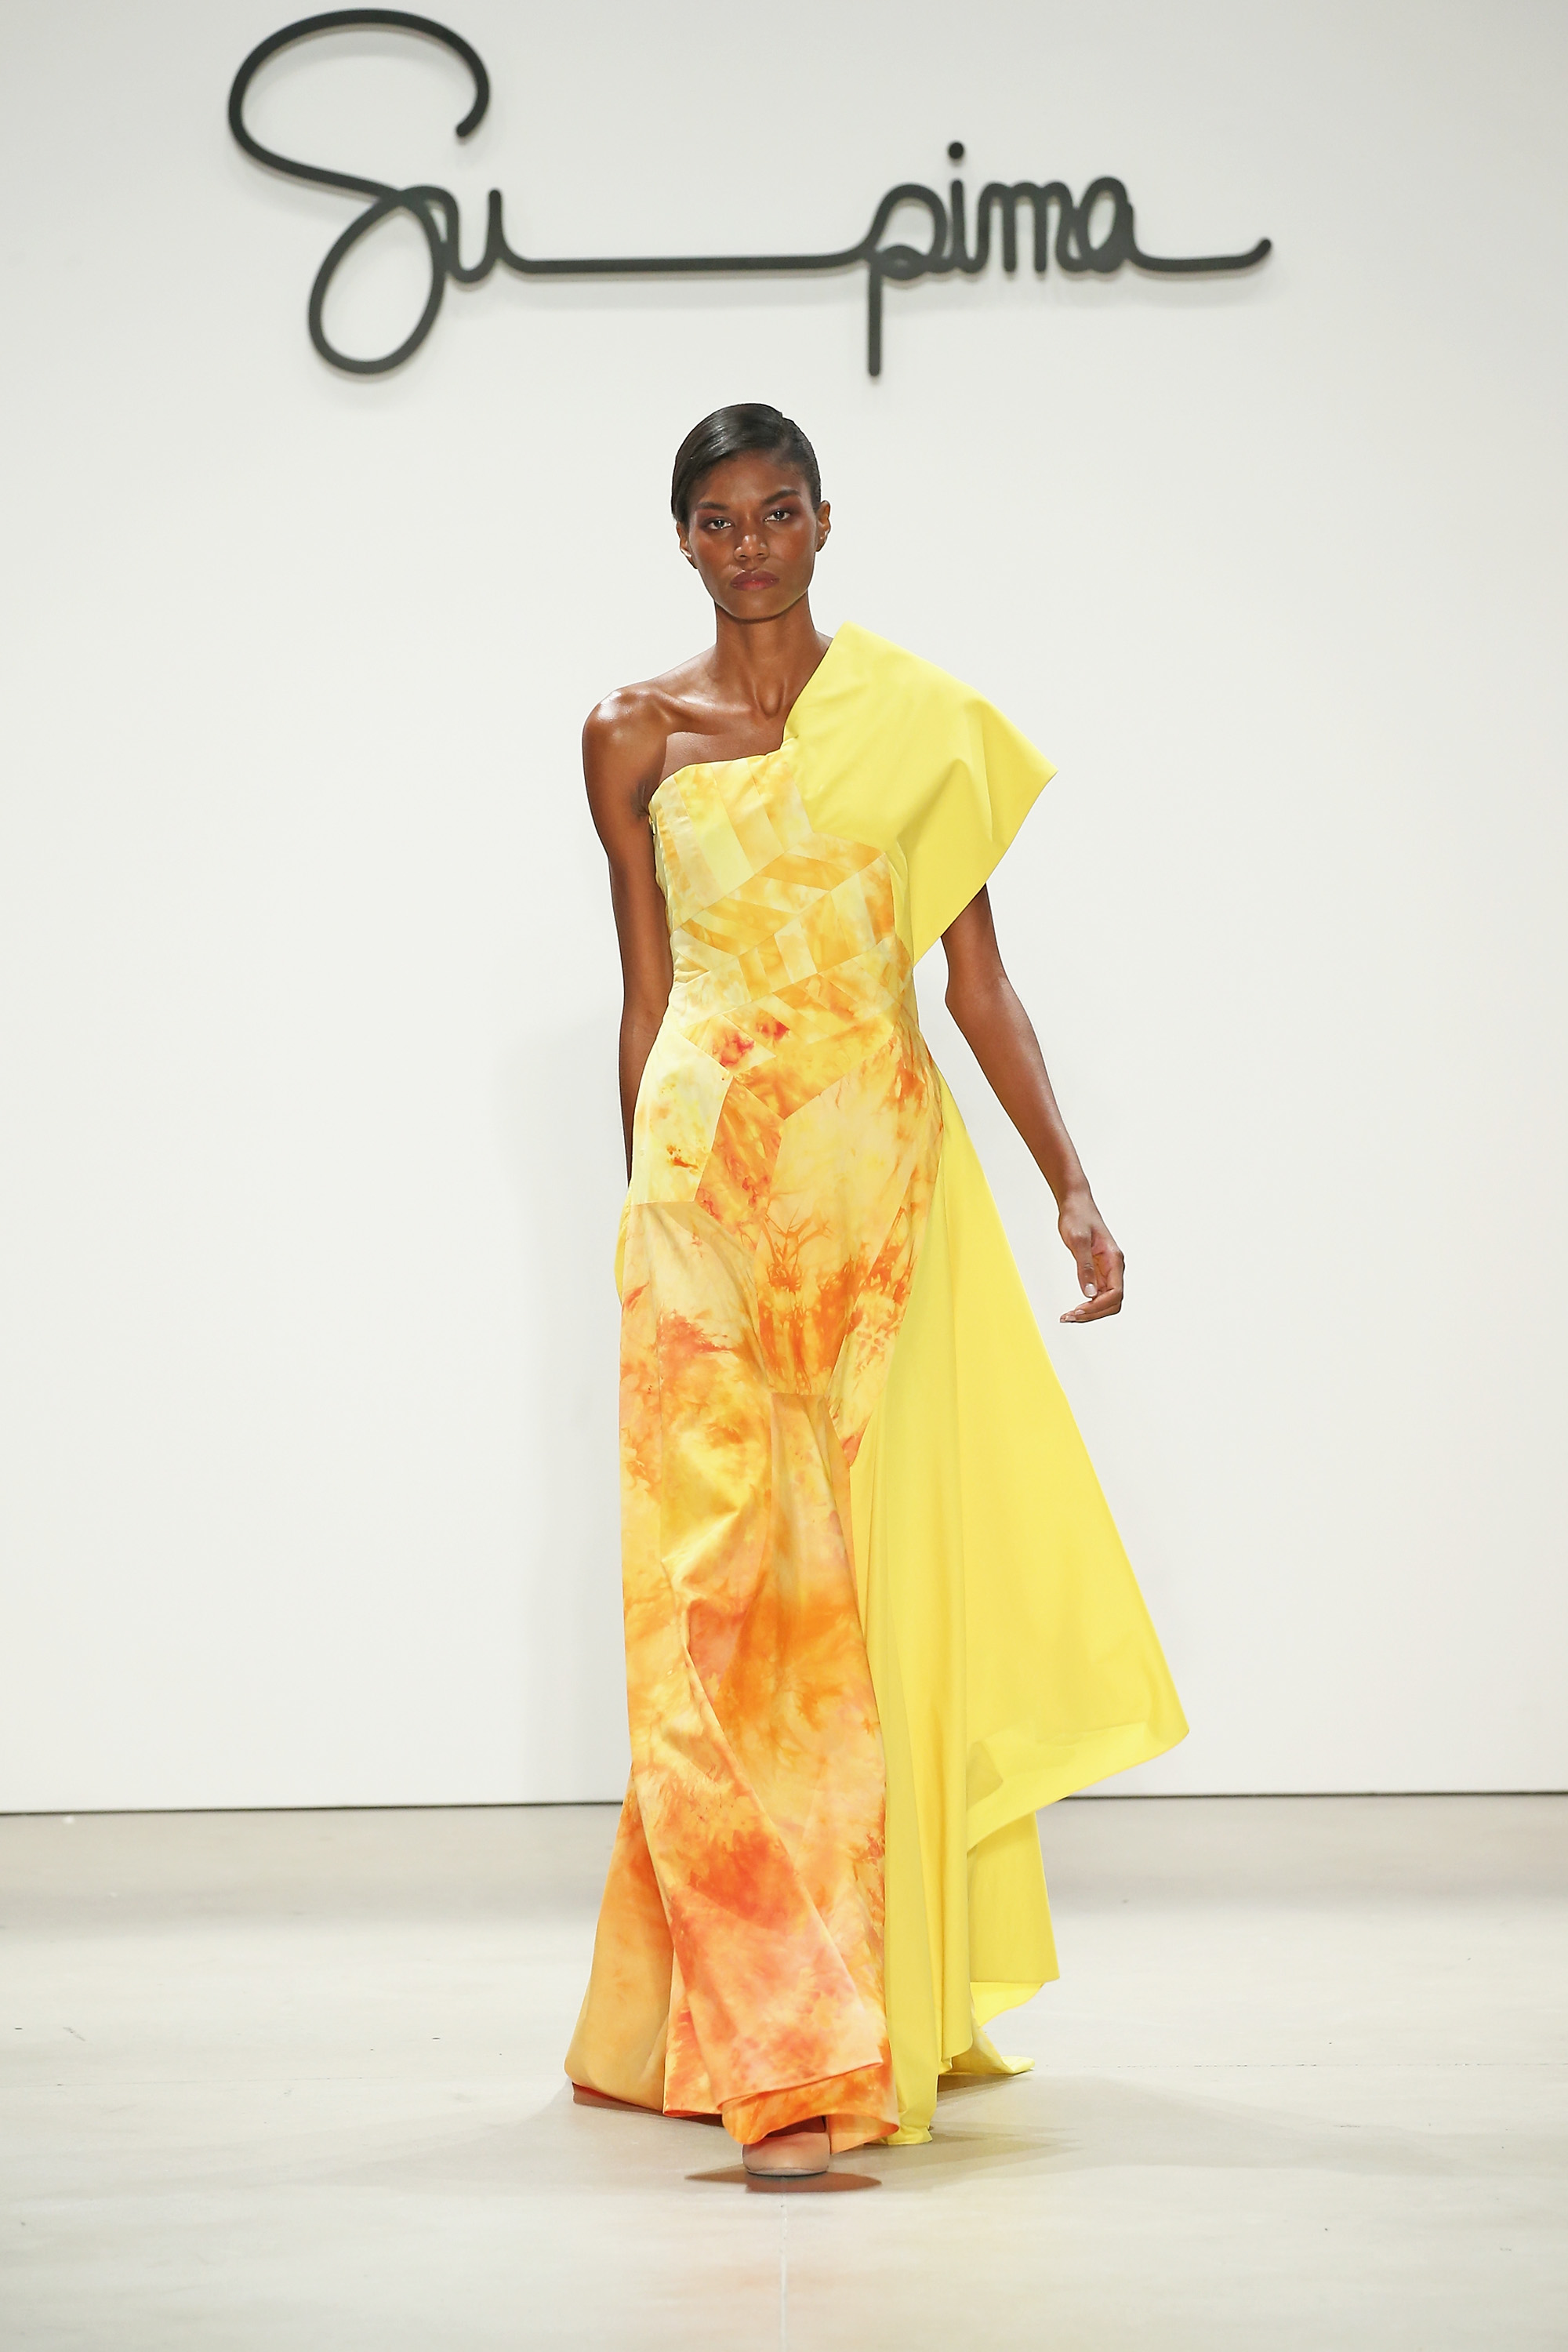 Shirting dress, ice dyed in fiery oranges and yellow with asymmetrical hemline, Courtesy of Supima